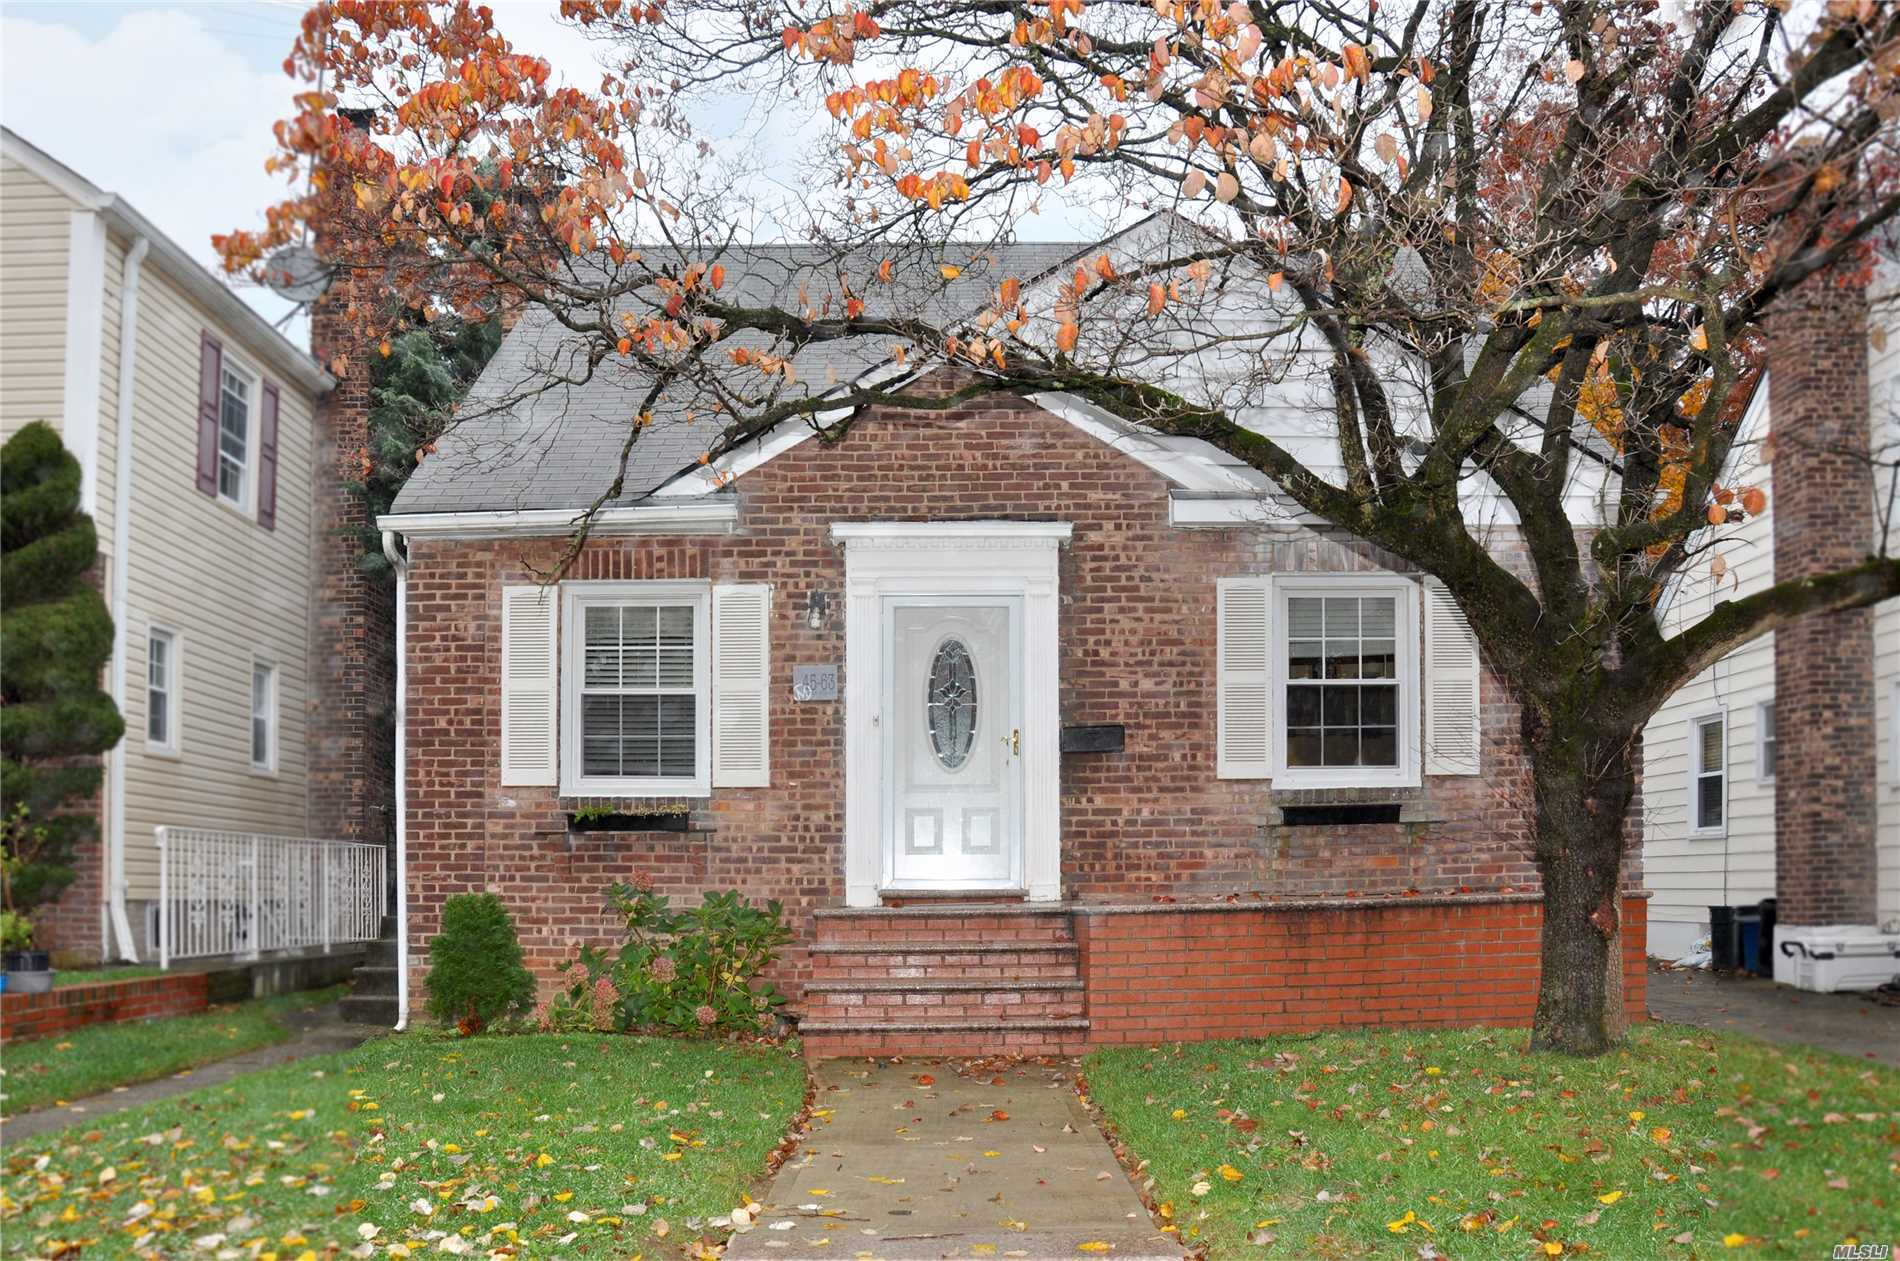 Nicely Renovated Cape On A Quiet, Tree-Lined Street In Beautiful Auburndale. House Features Five Bedrooms, Two Full Baths And A Finished Basement With Separate Outside Entrance. Great 40X100 Property With Private Driveway And Garage. Convenient Location Close To Shops & Transportation. Amazing School District #26.